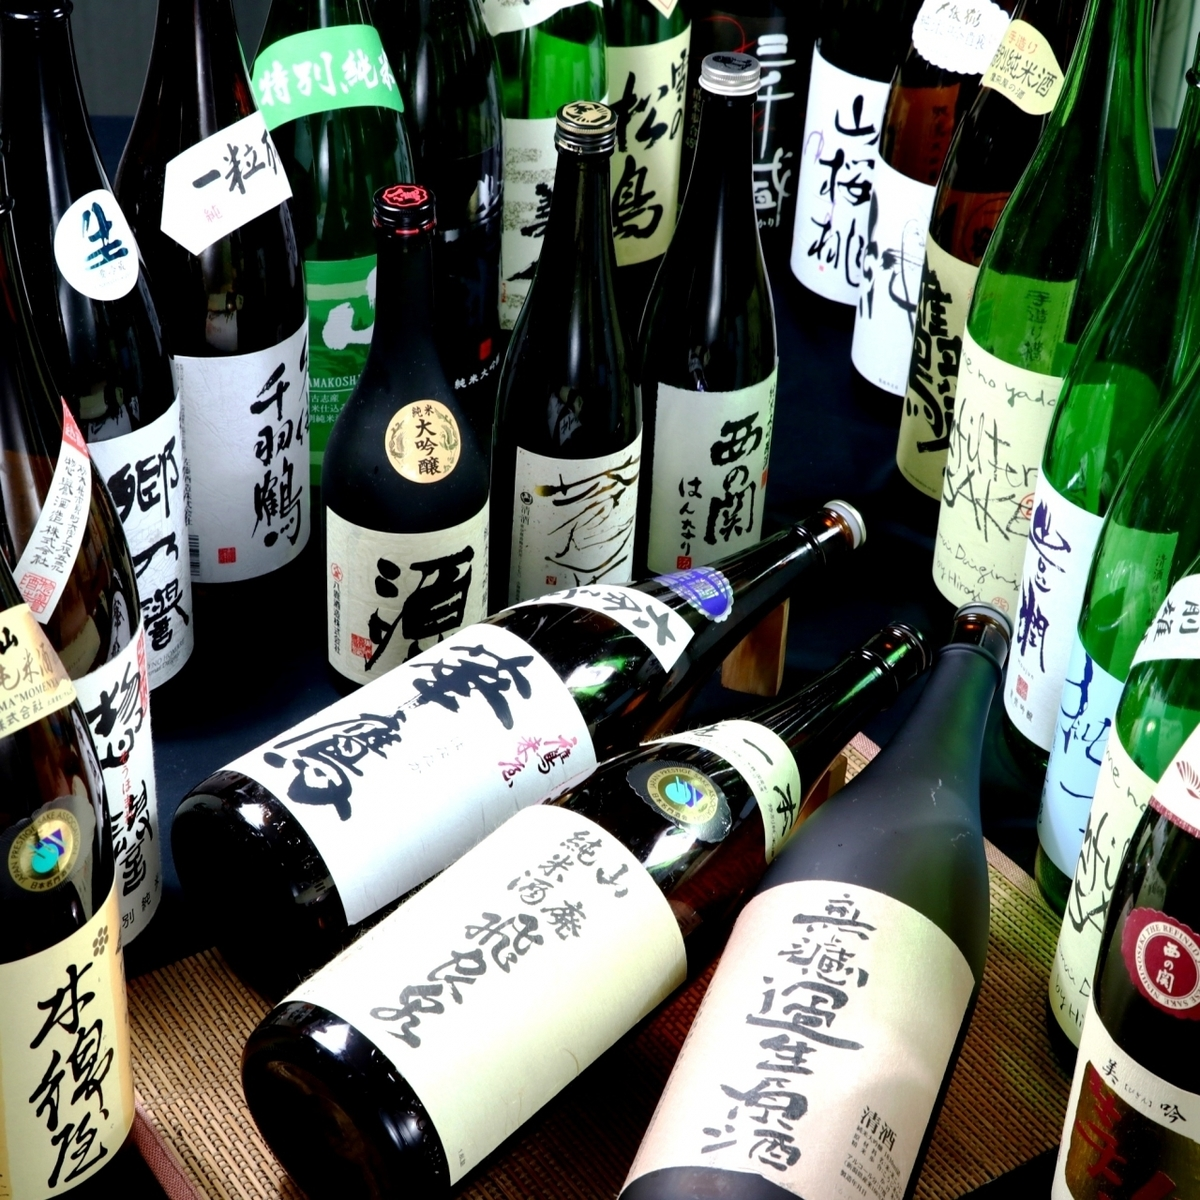 More than 50 kinds of sake!